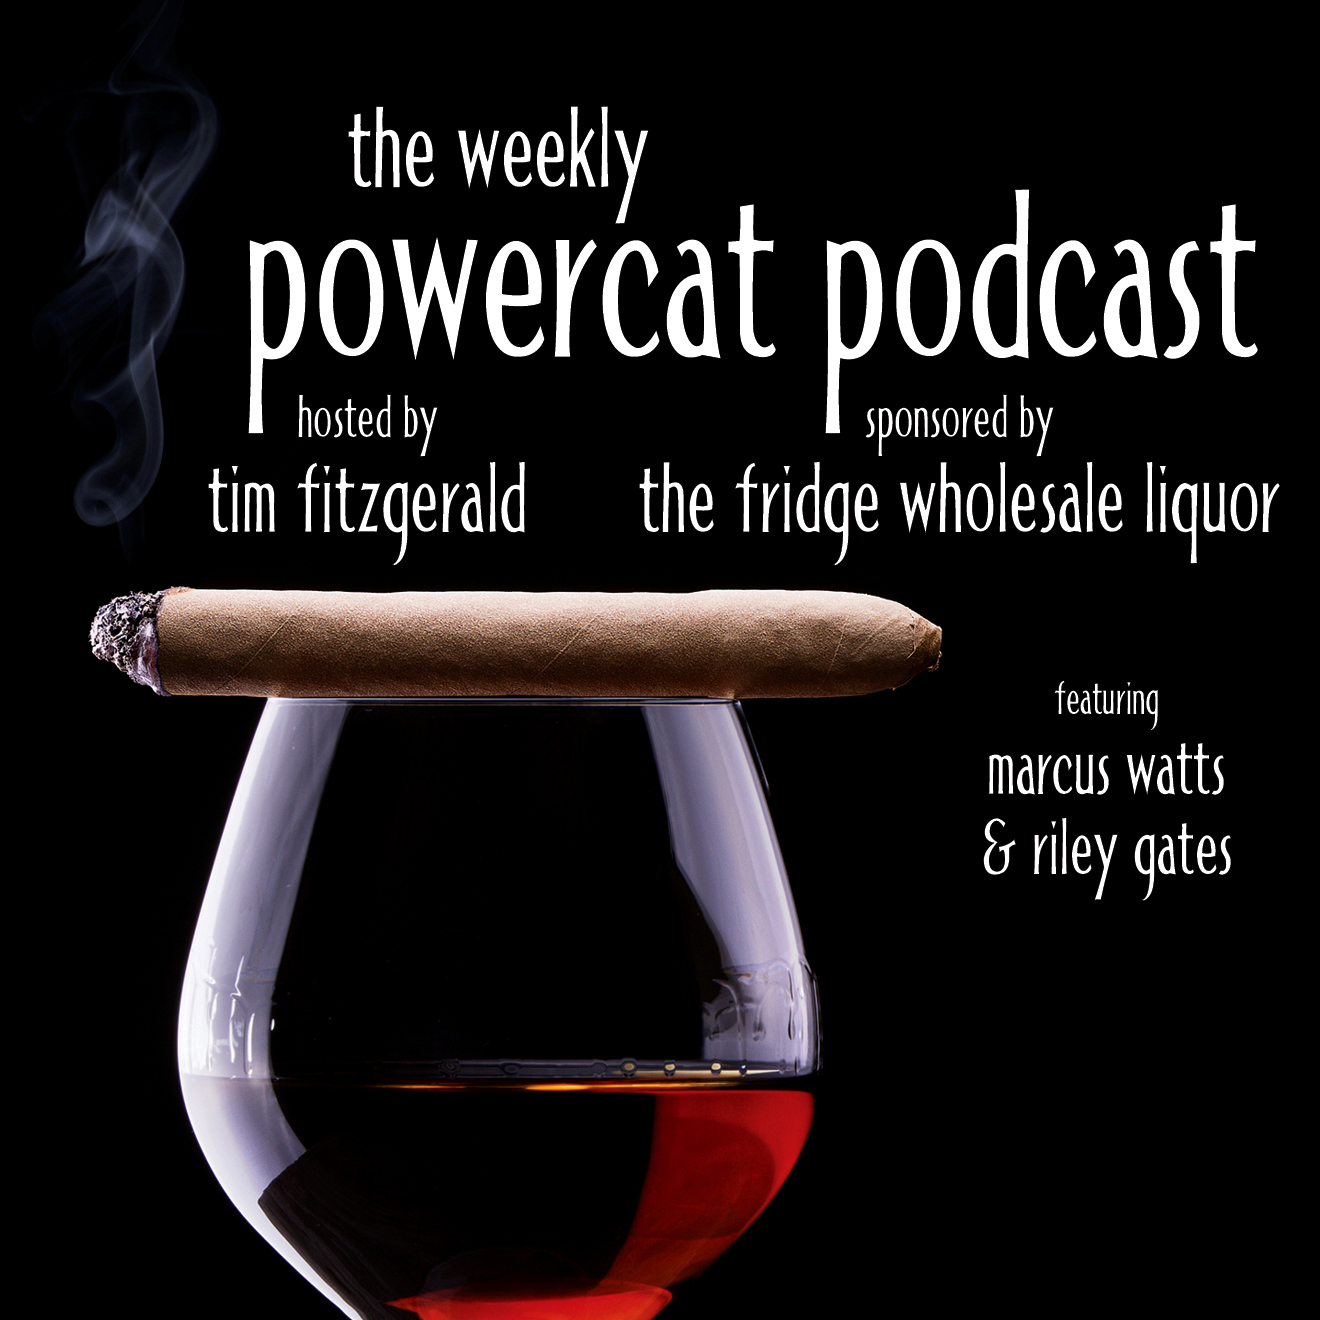 The Powercat Podcast 10.04.16